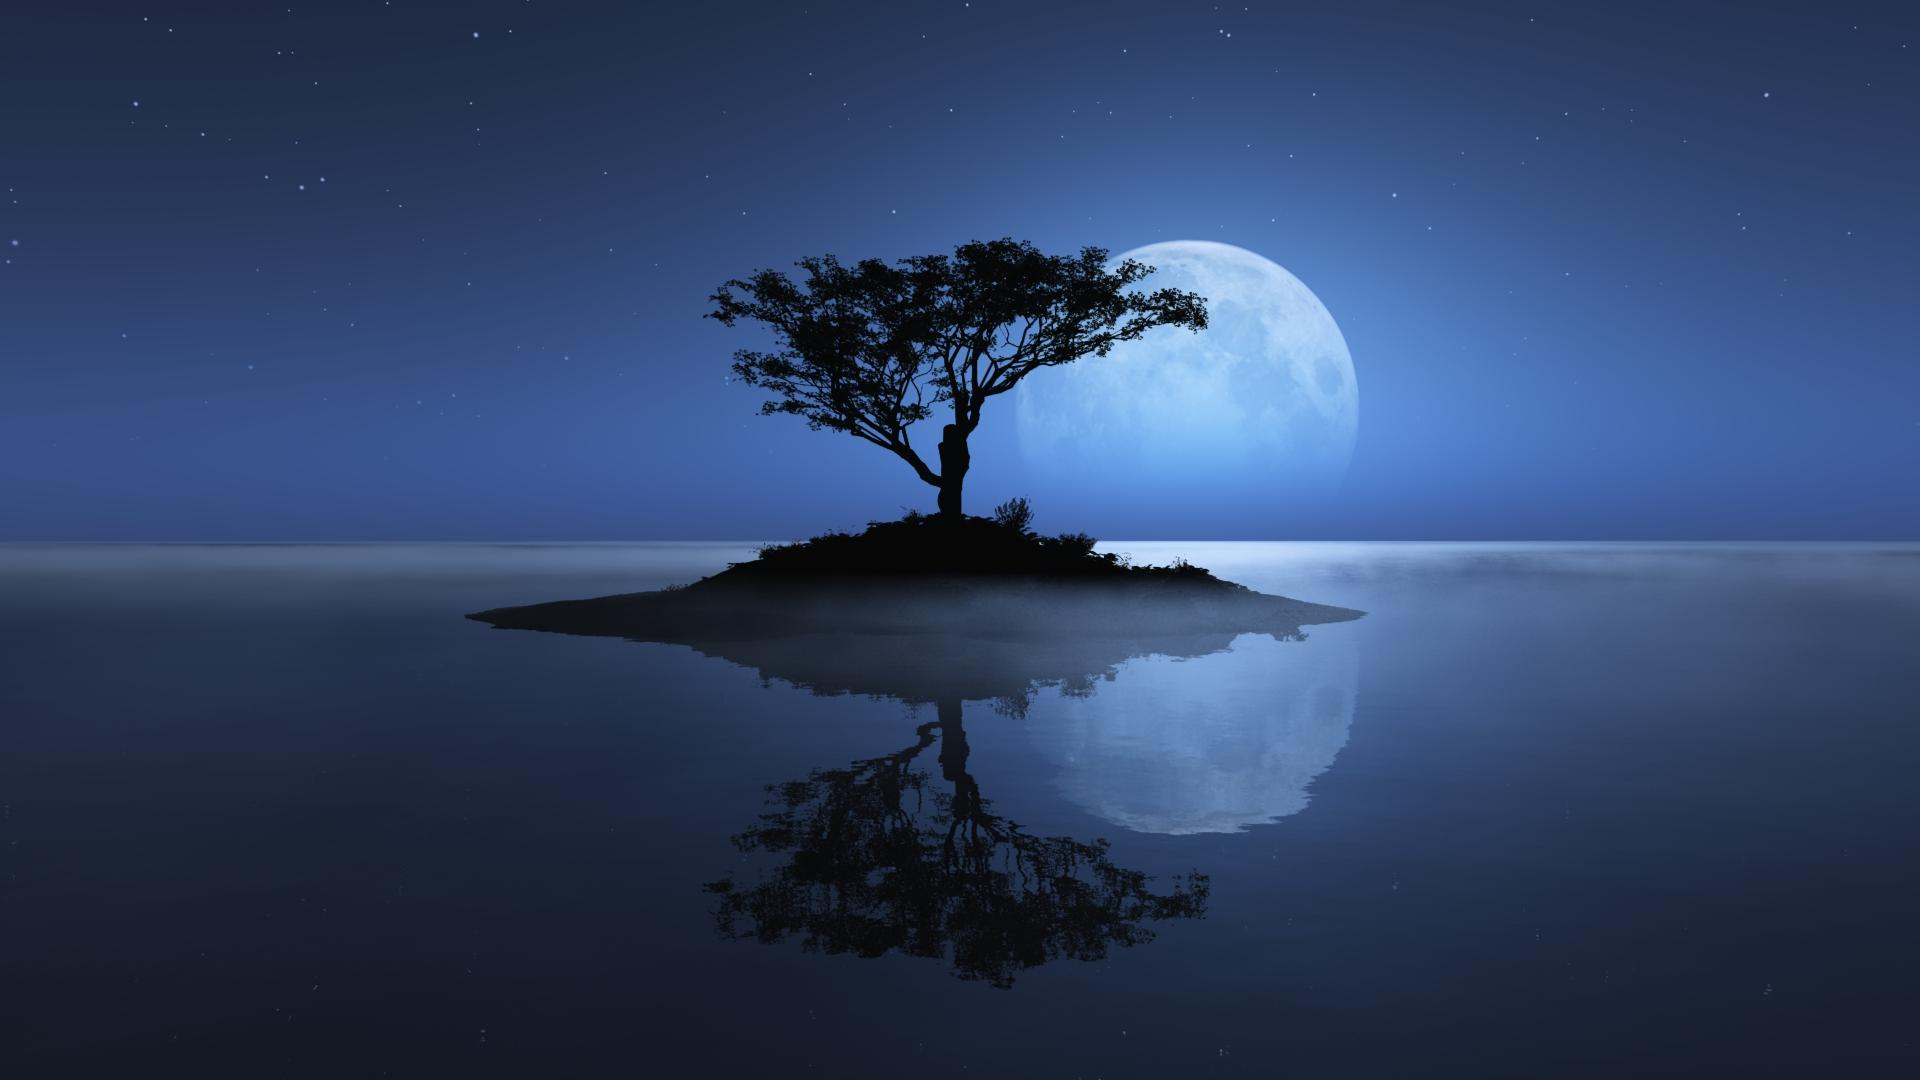 Wallpaper Nature Night